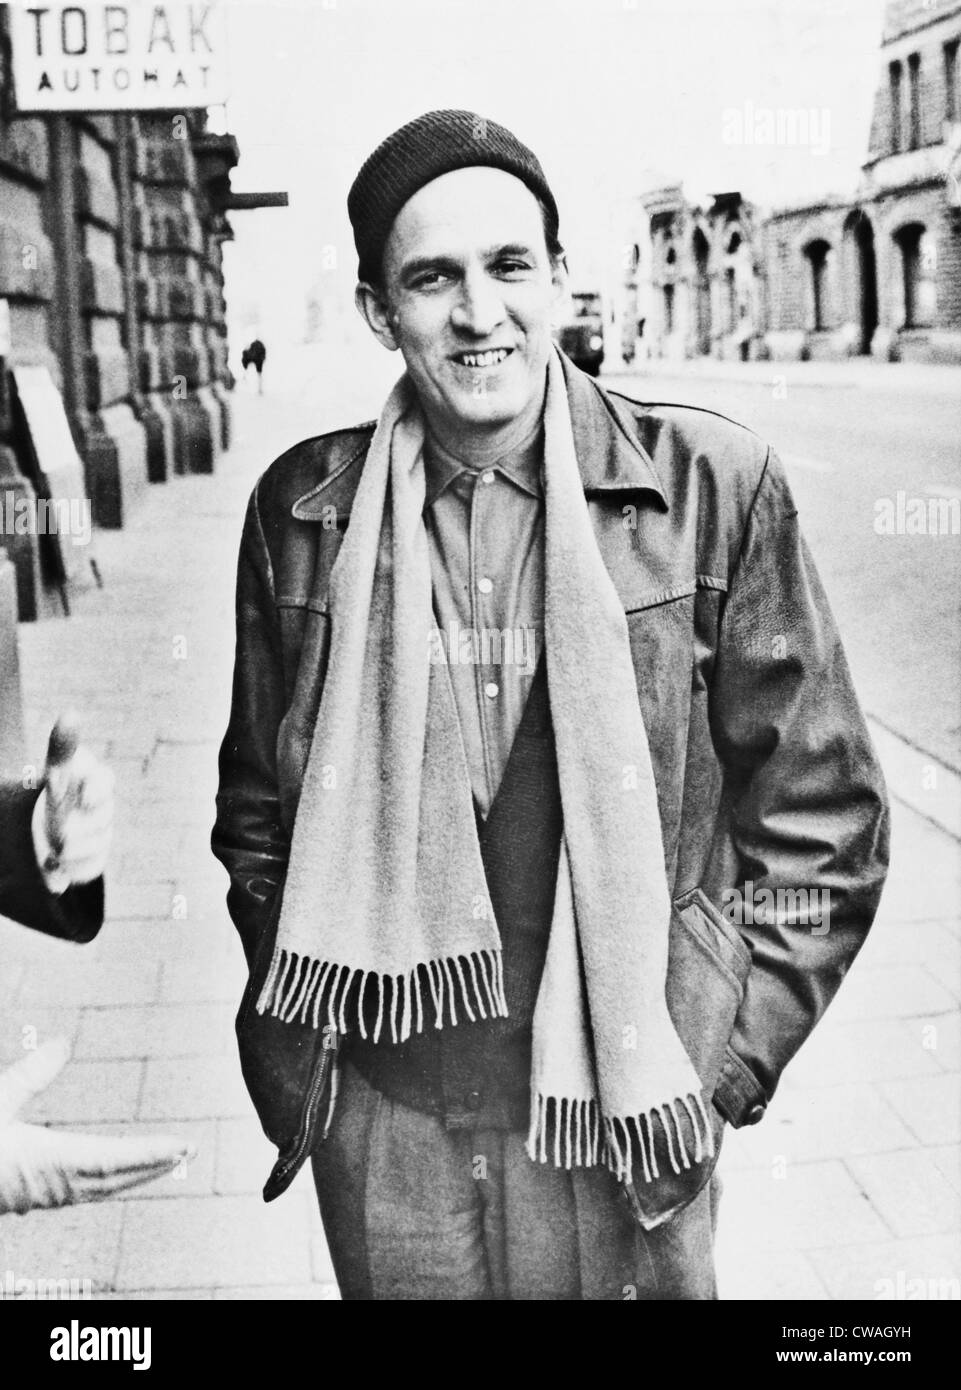 Ingmar Bergman (1918-2007), Swedish director and filmmaker, on a Stockholm street in 1961. - Stock Image